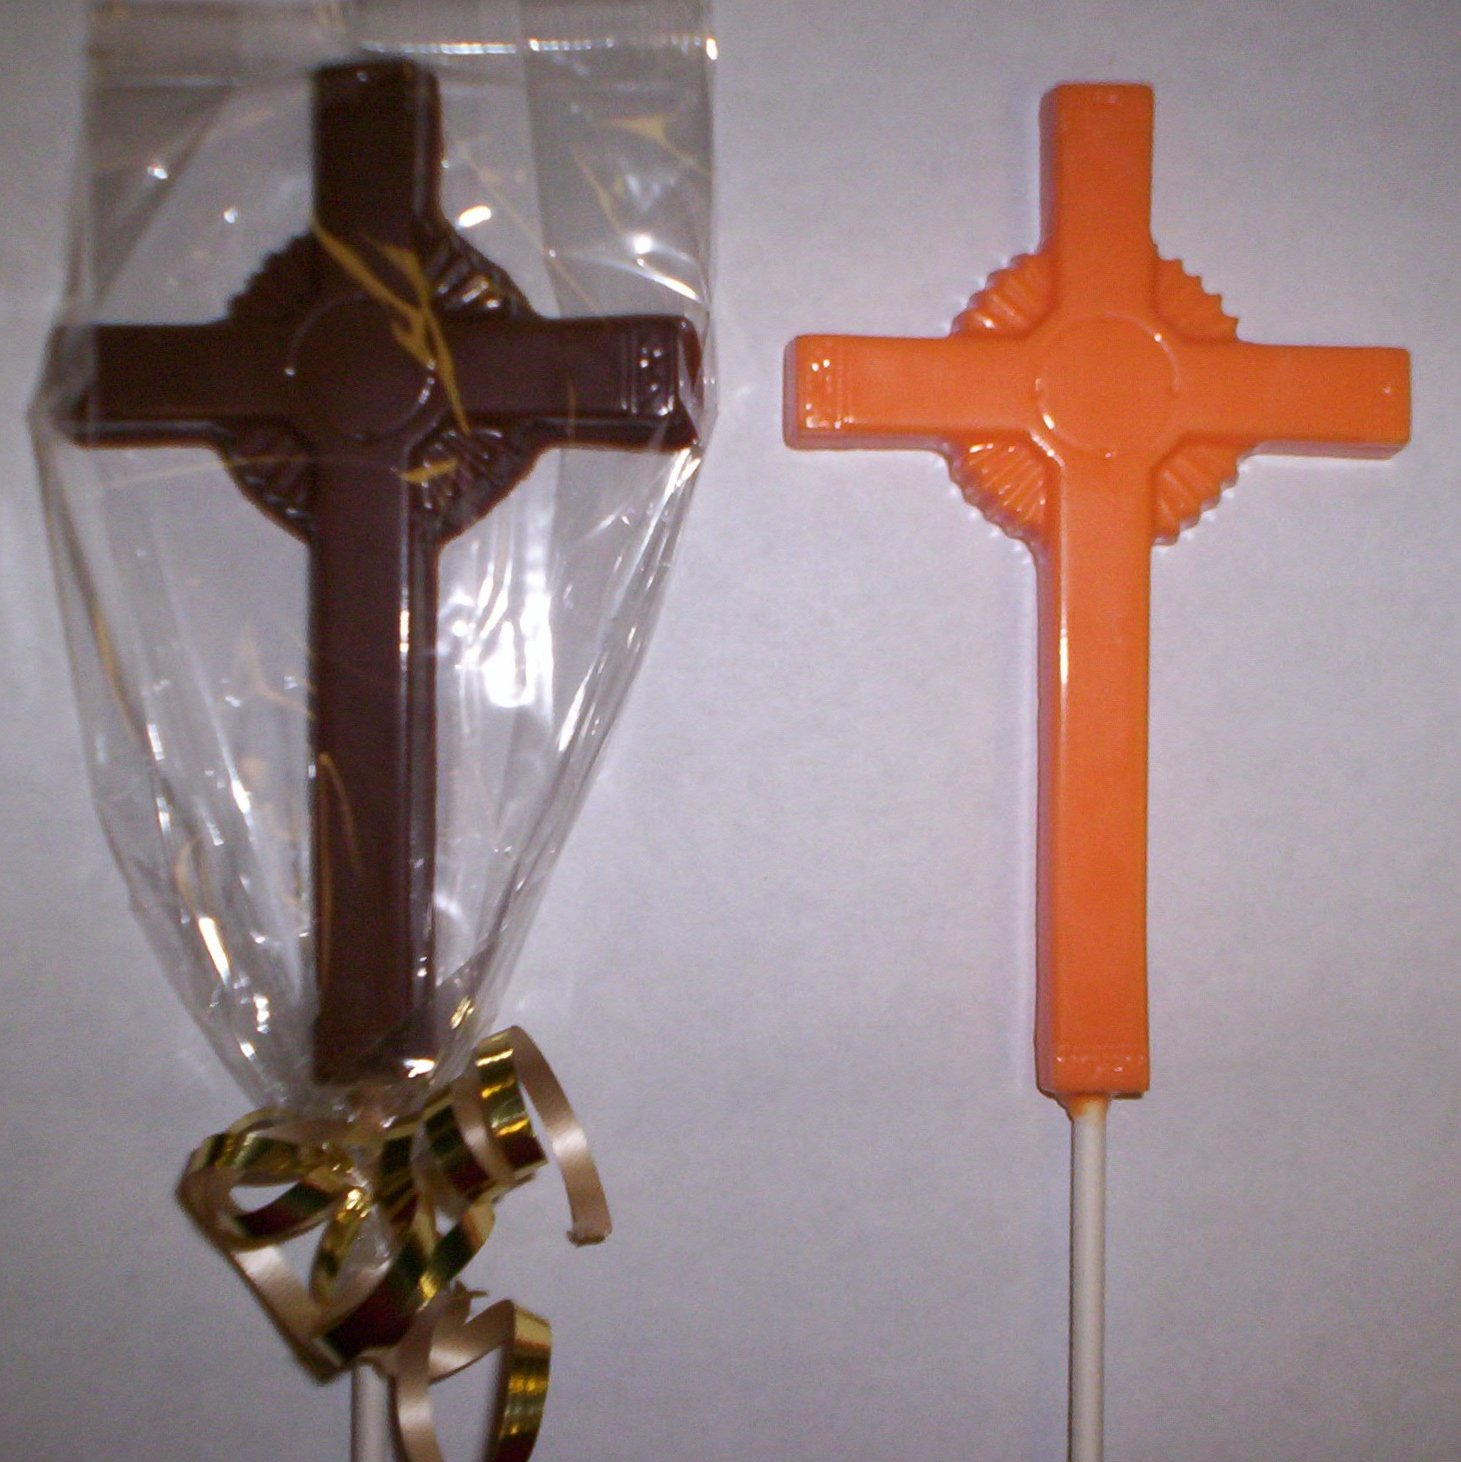 Chocolate Religious Party Favors | Delicious Creations near Chicago in Hickory Hills, IL